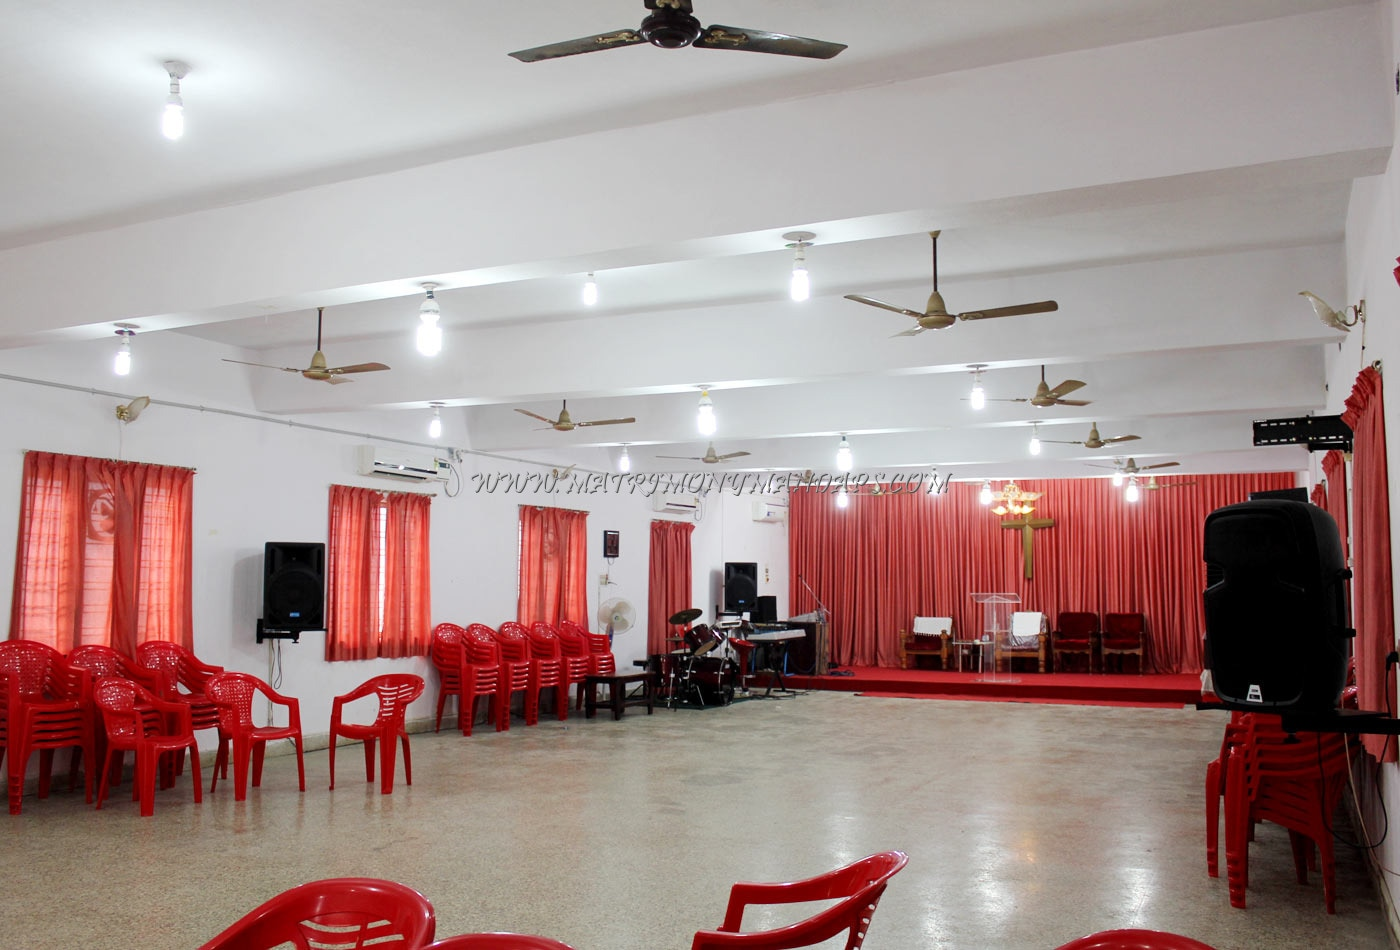 Find the availability of the Mirle Church Of God (A/C) in Mogappair, Chennai and avail special offers